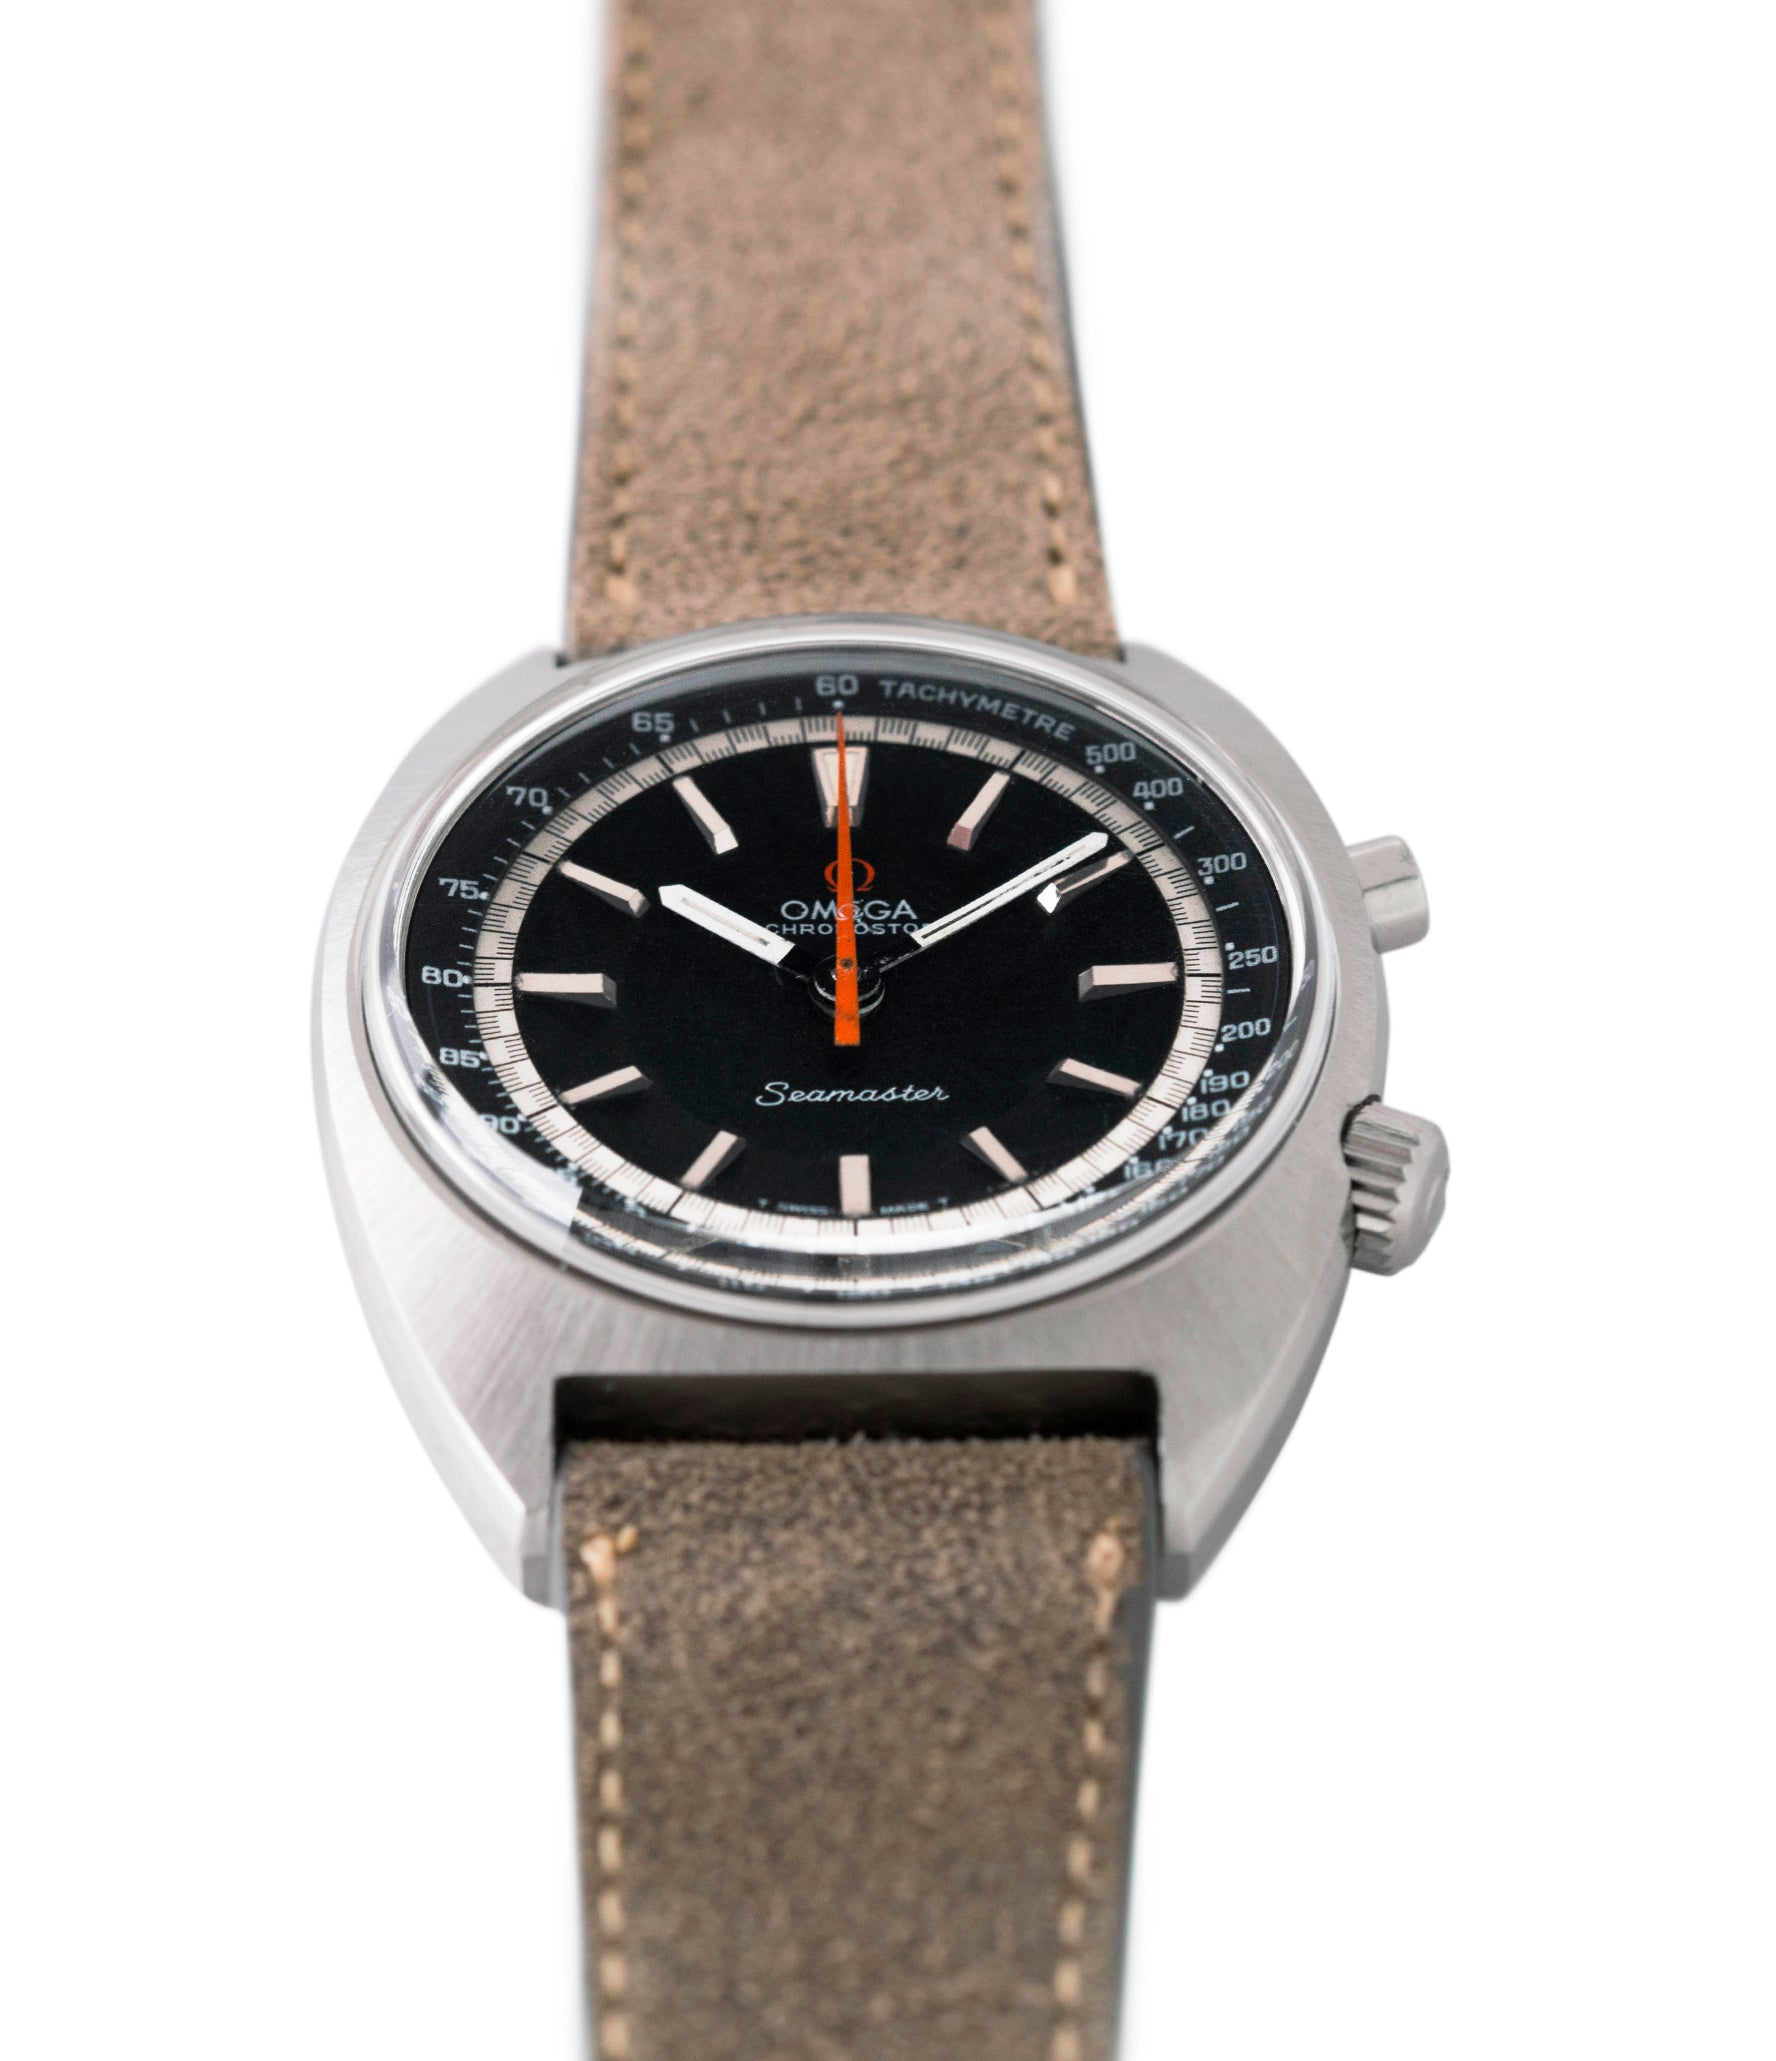 steel Omega Seamaster Chronostop 145.007 manual-winding Cal. 865 steel chronograph sport watch for sale online at A Collected Man London UK specialist of rare watches